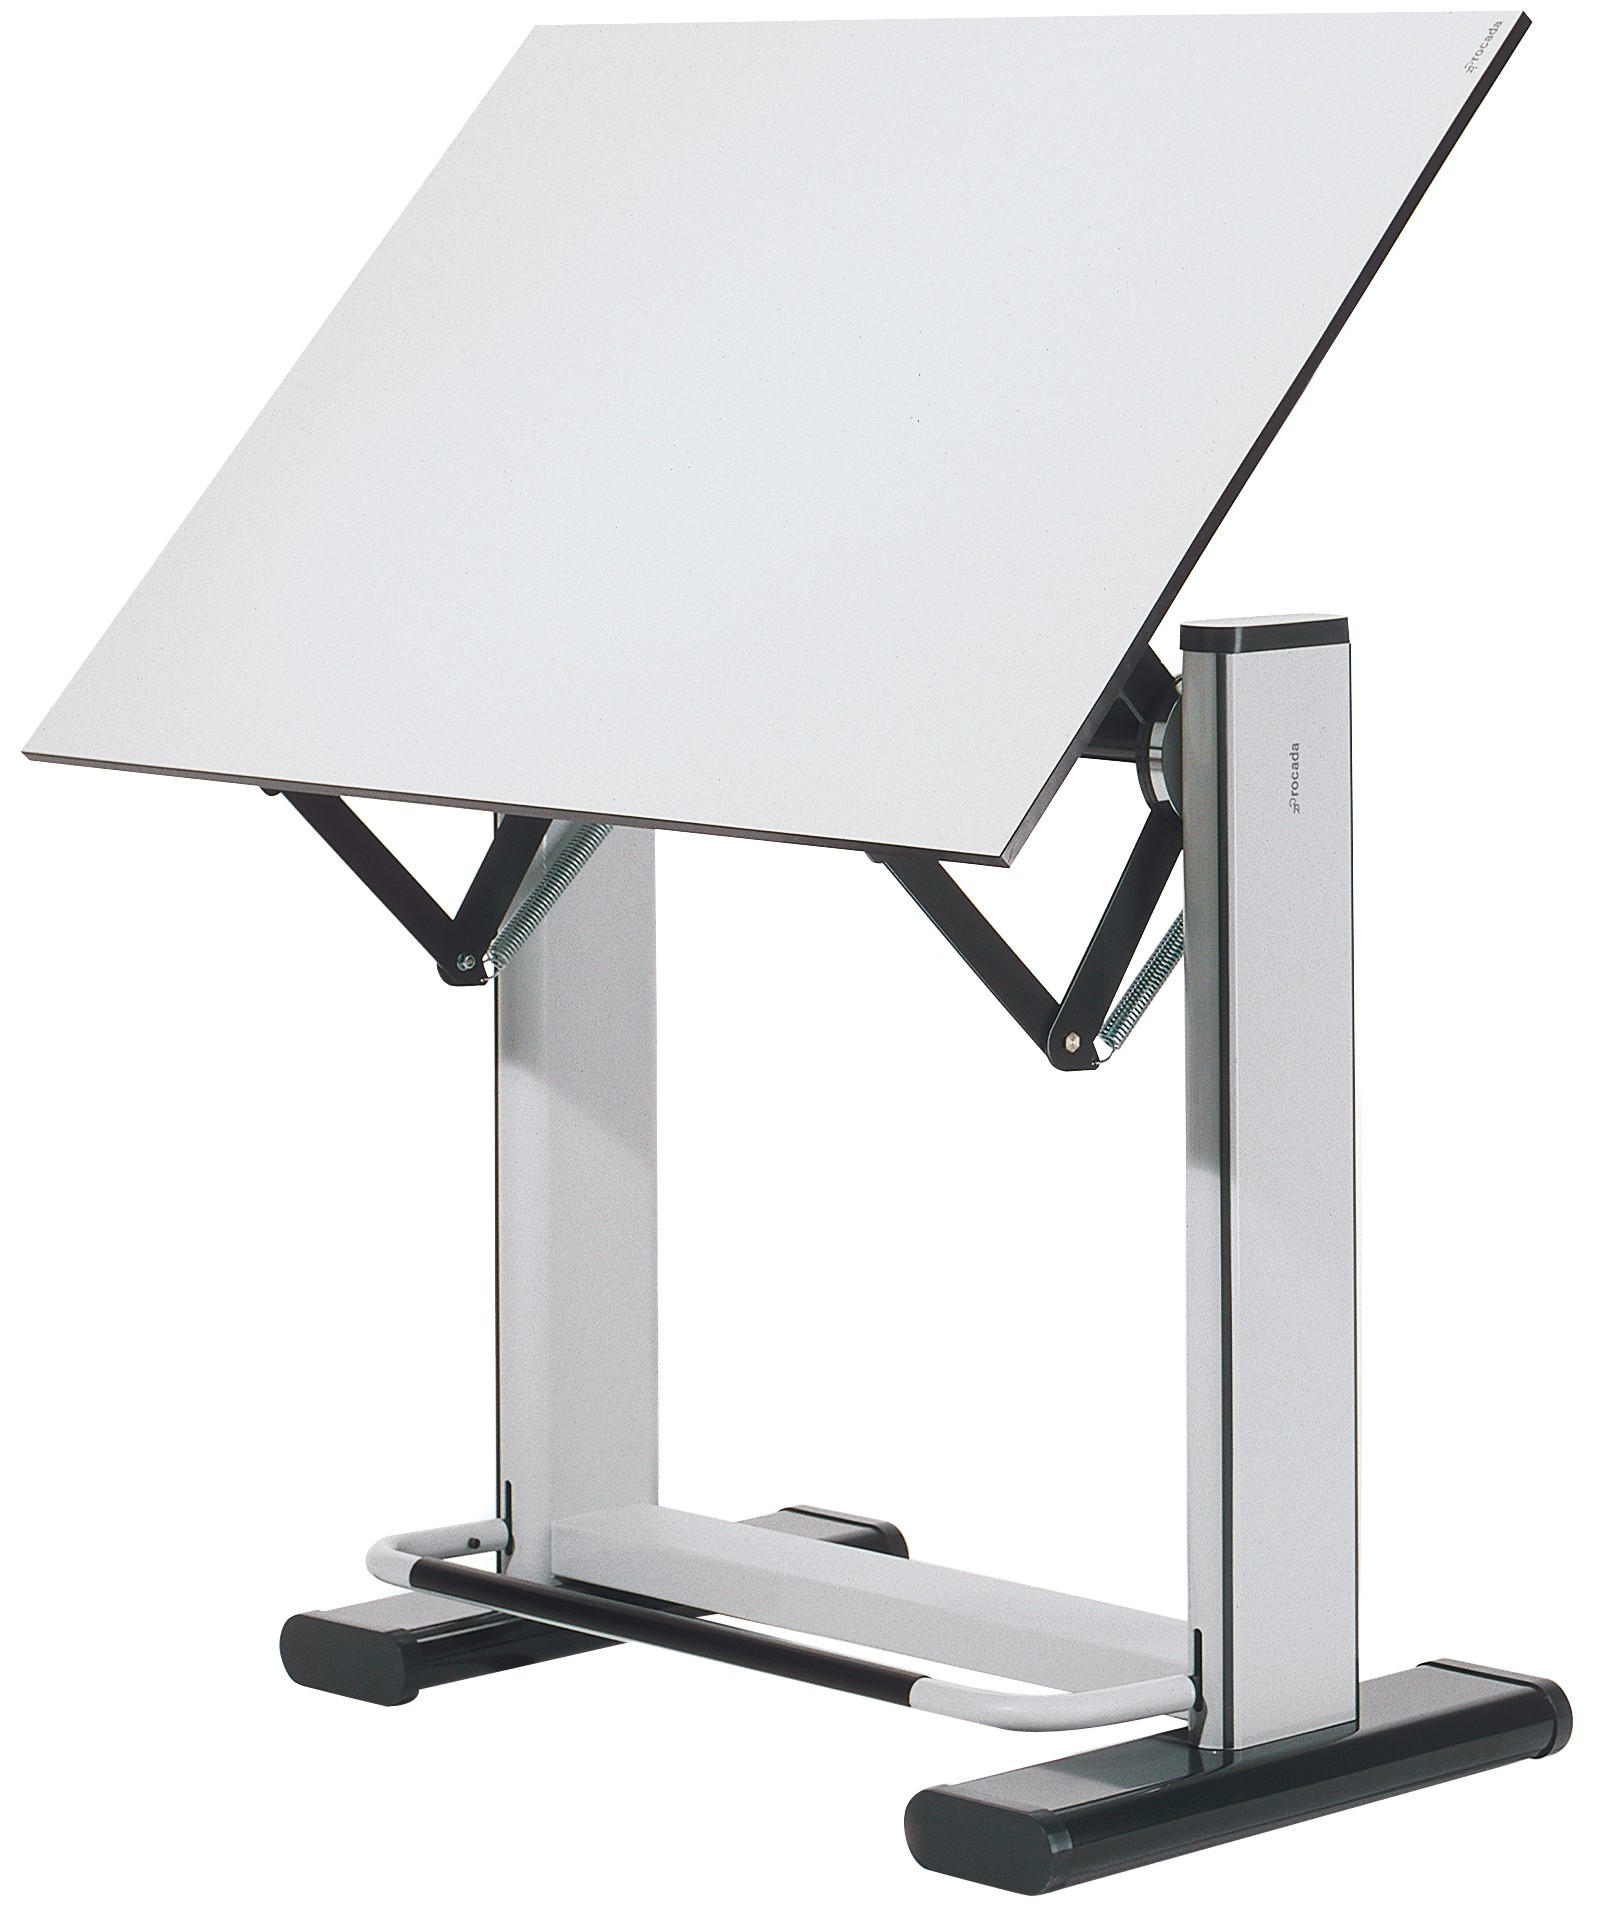 TABLE DRAWING PROFESSIONAL RD-110